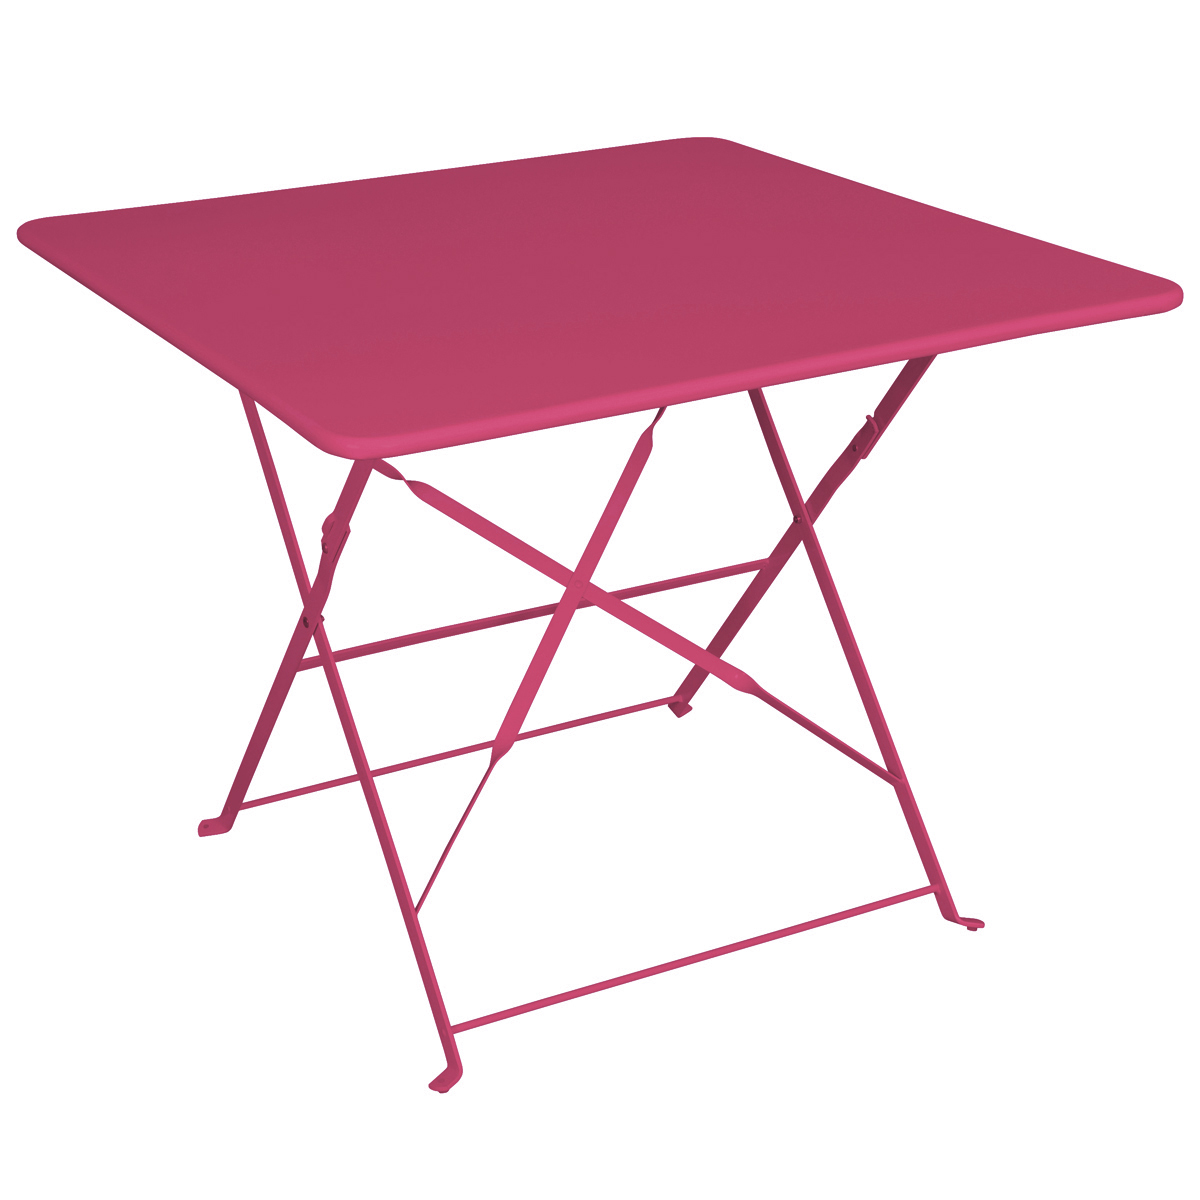 Table camargue framboise structure m tal epoxy dim 90 x 90 cm jardin - Table de jardin en metal ...